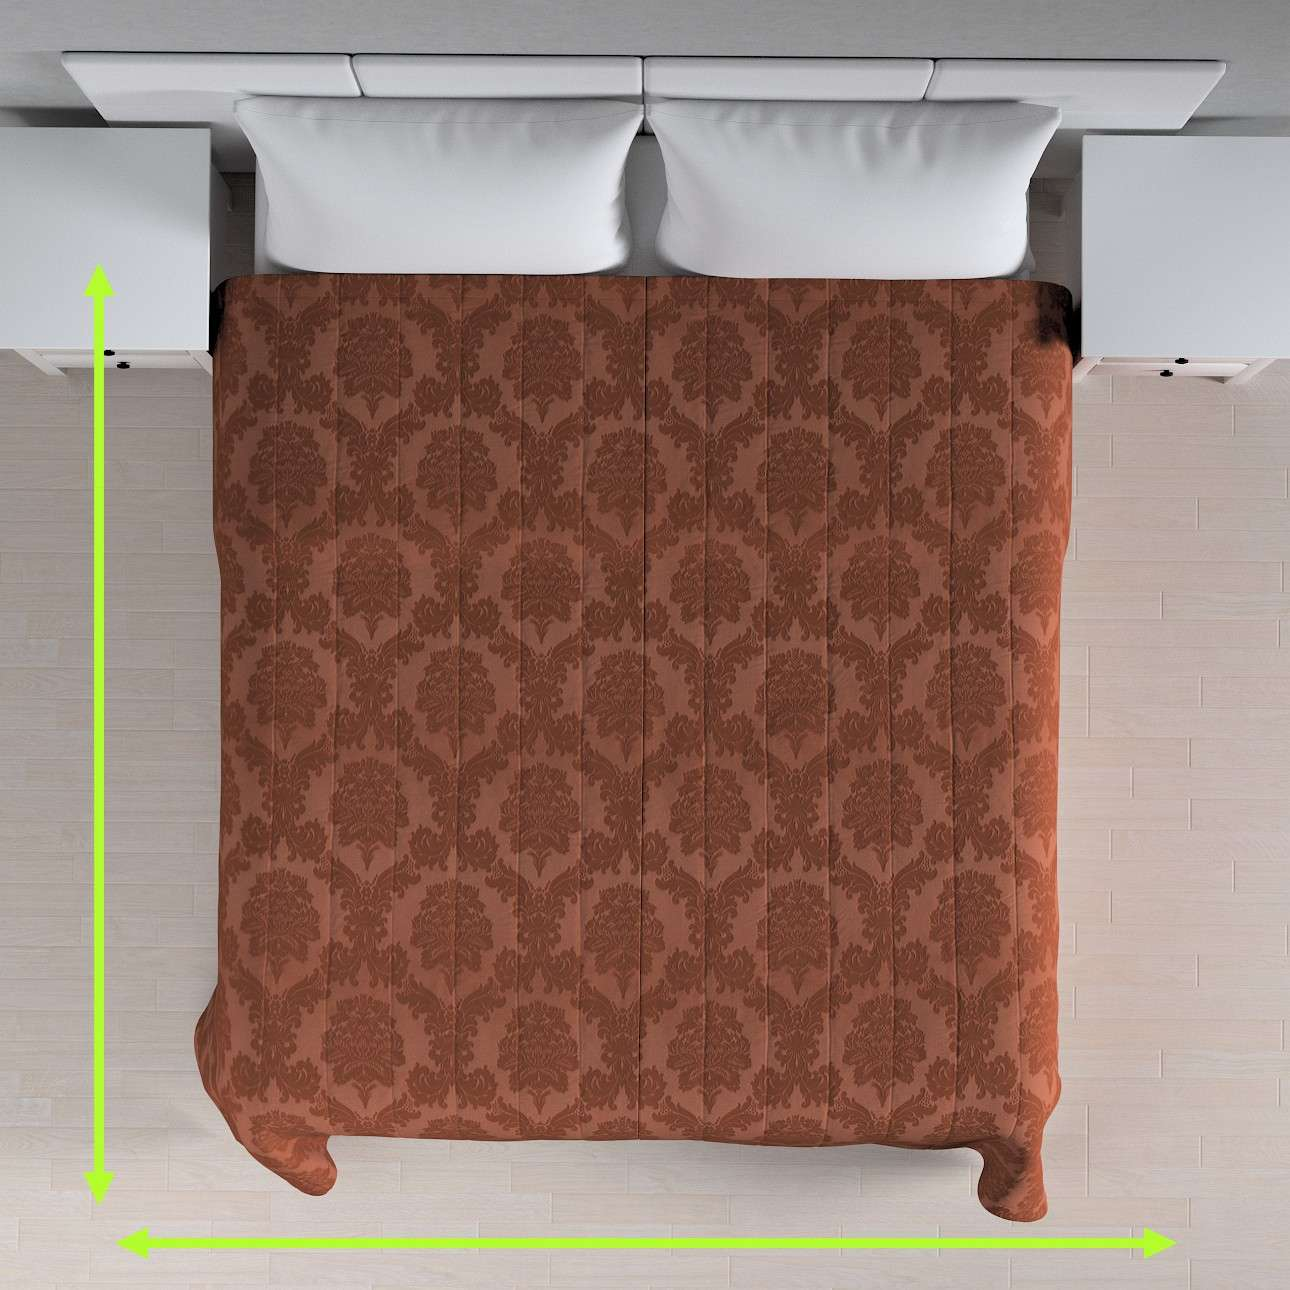 Quilted throw (vertical quilt pattern) in collection Damasco, fabric: 613-88